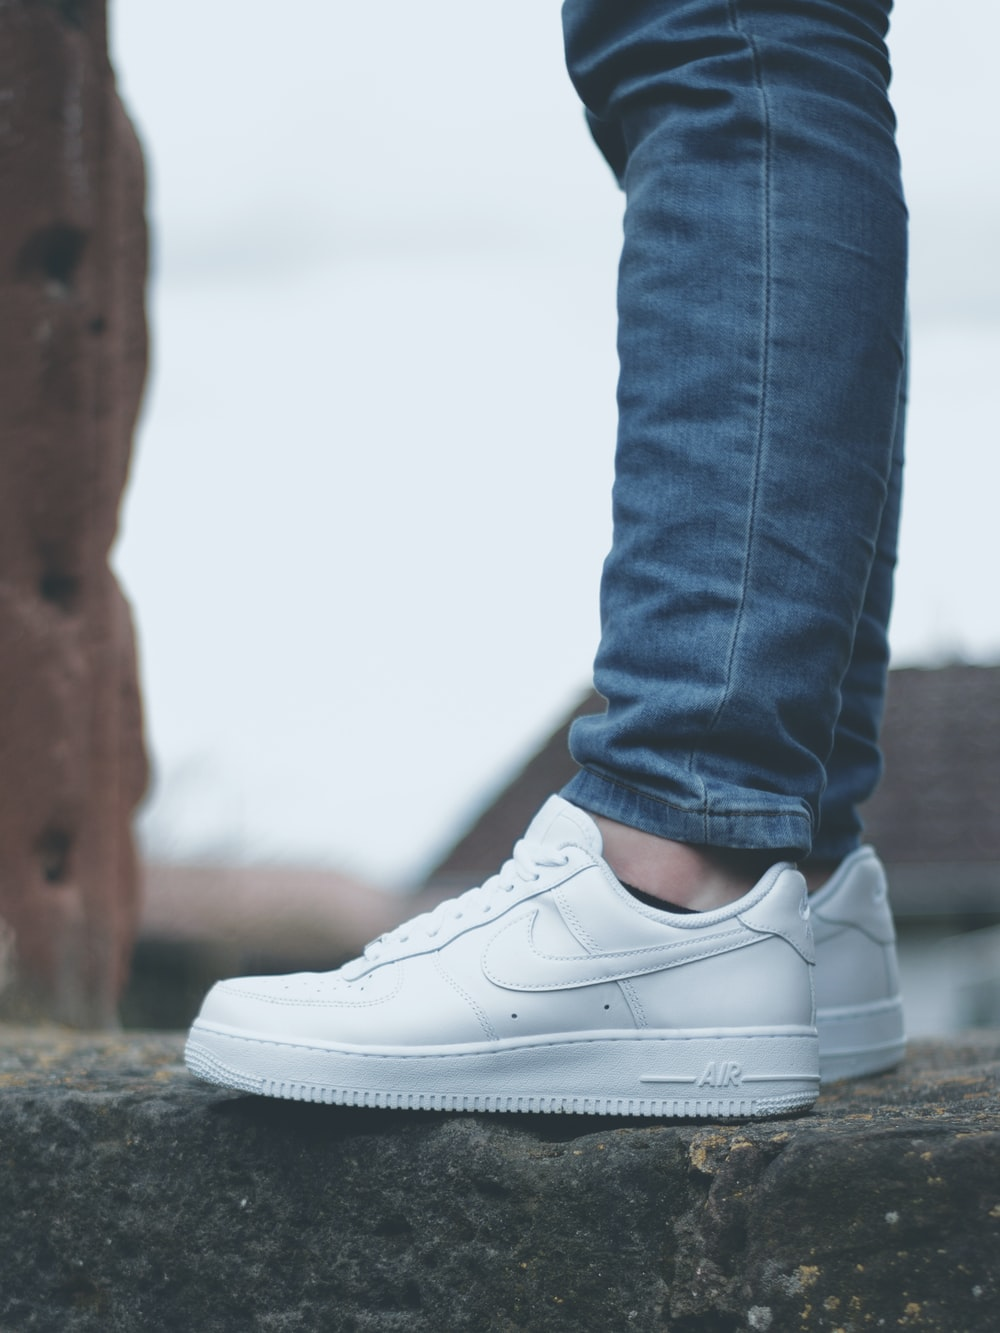 pair of white Nike shoes